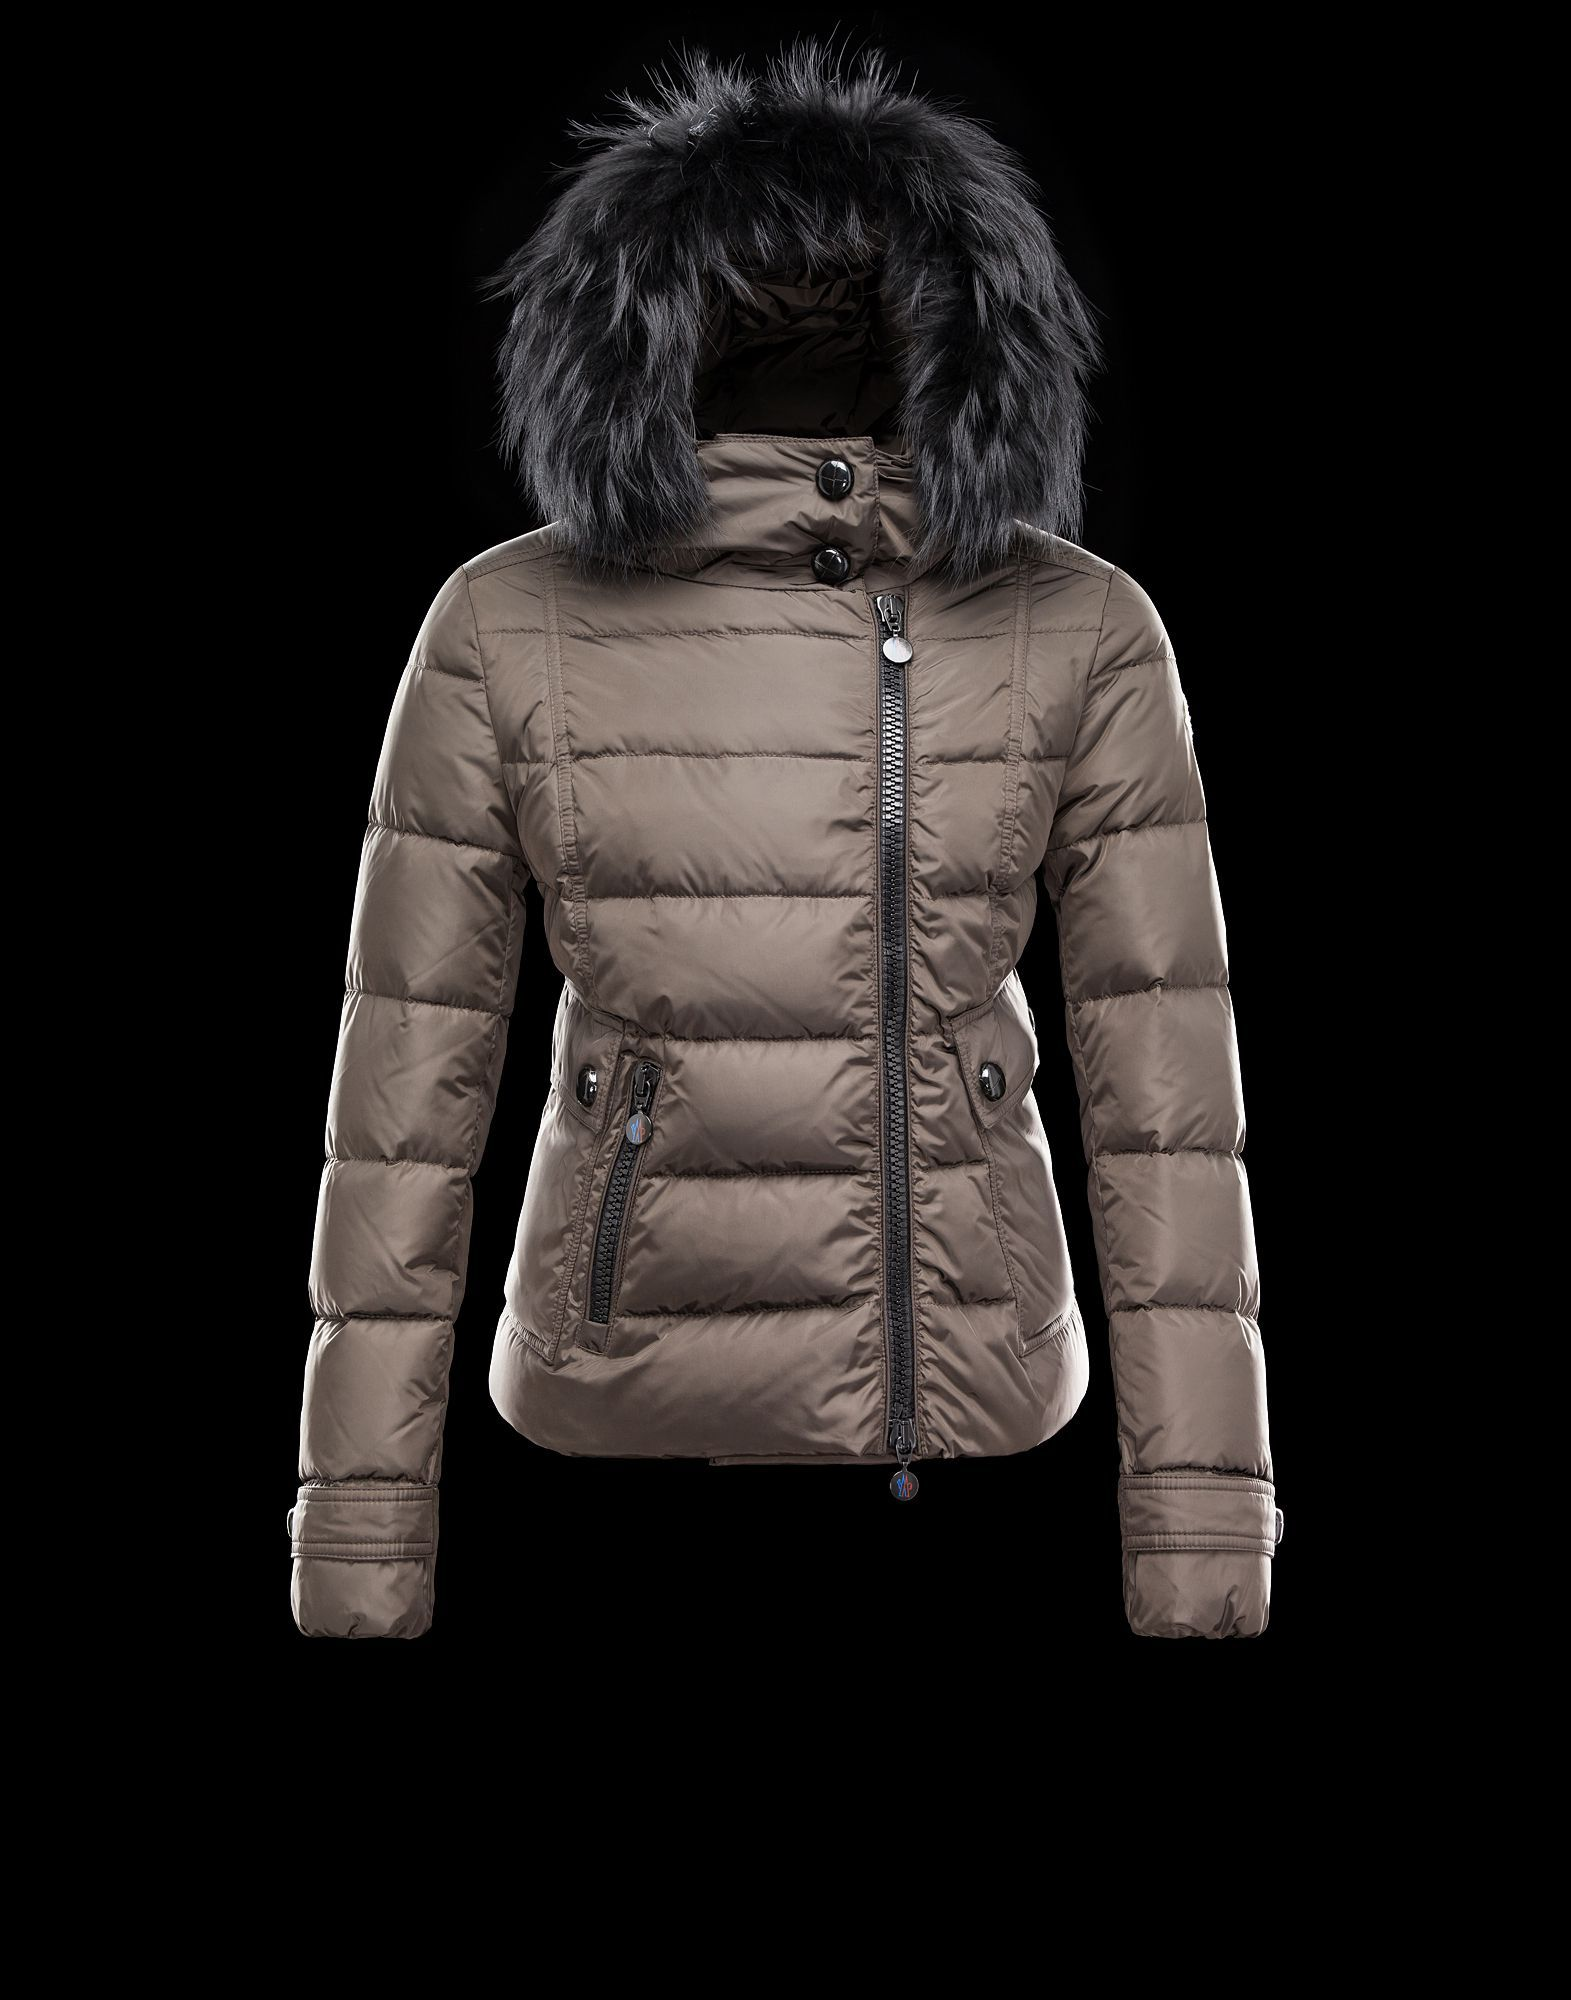 f176df7fa57c Moncler LOIRAC in Outerwear for men  find out the product features and shop  now directly from the Moncler official Online Store.